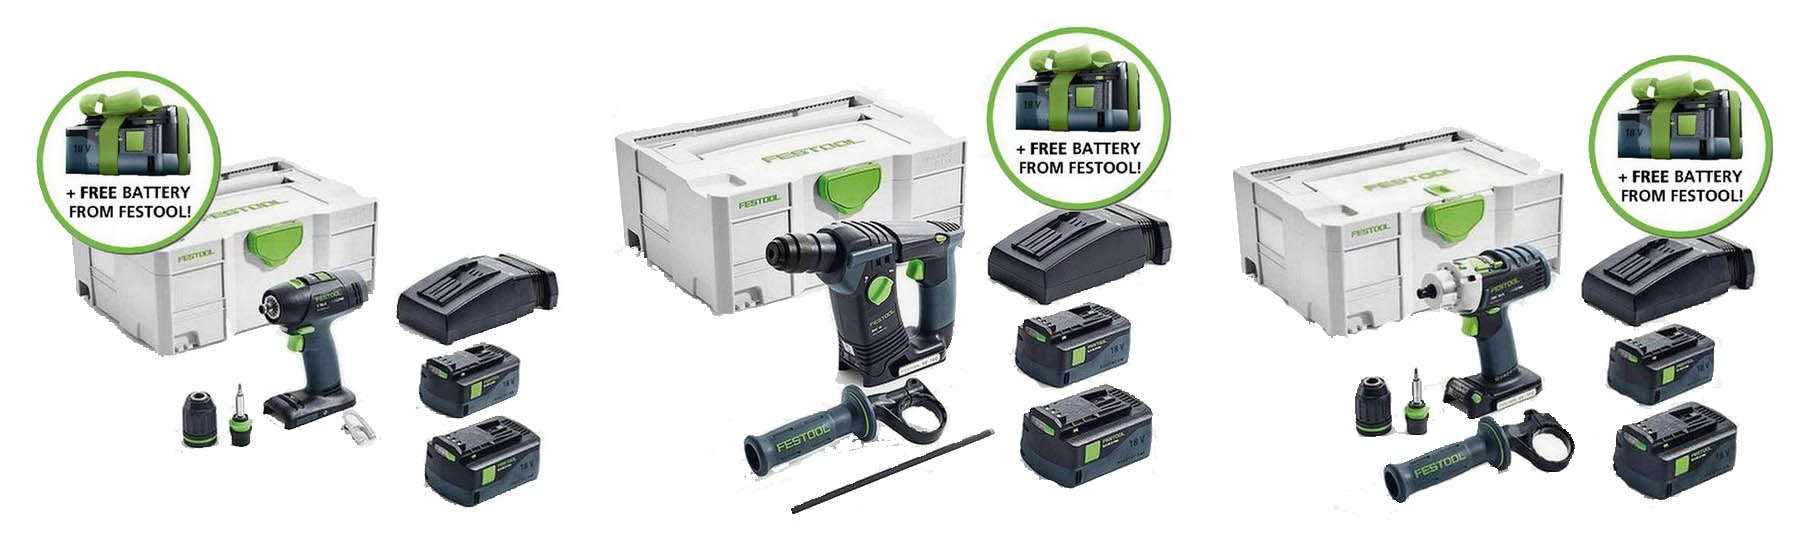 Festool battery promotion